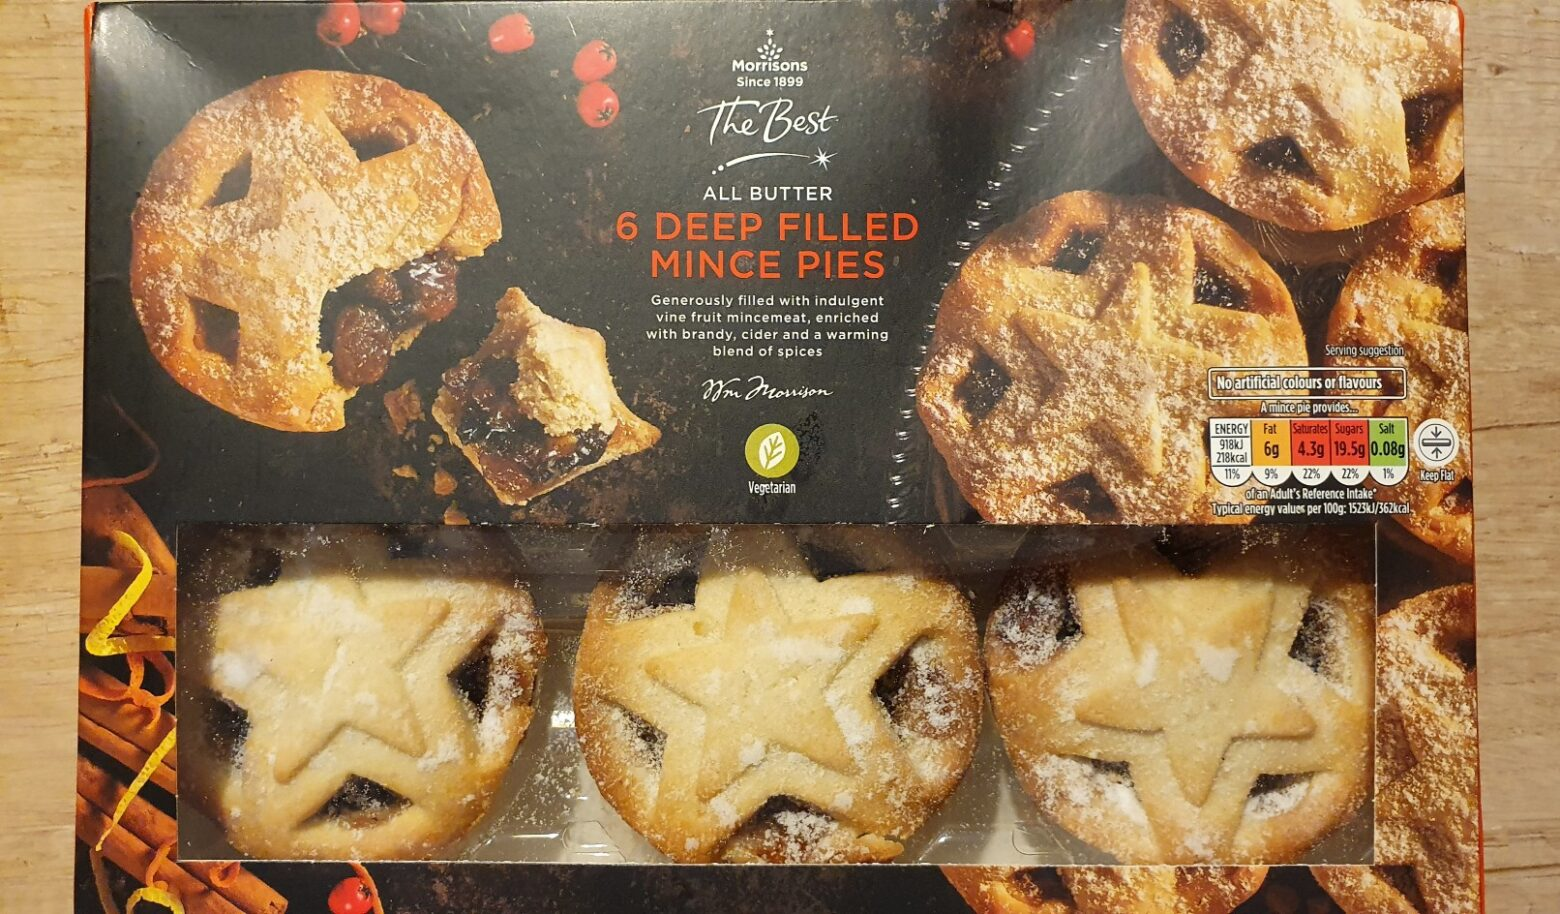 Morrisons 'The Best' All Butter Deep Filled Mince Pie Review 2020